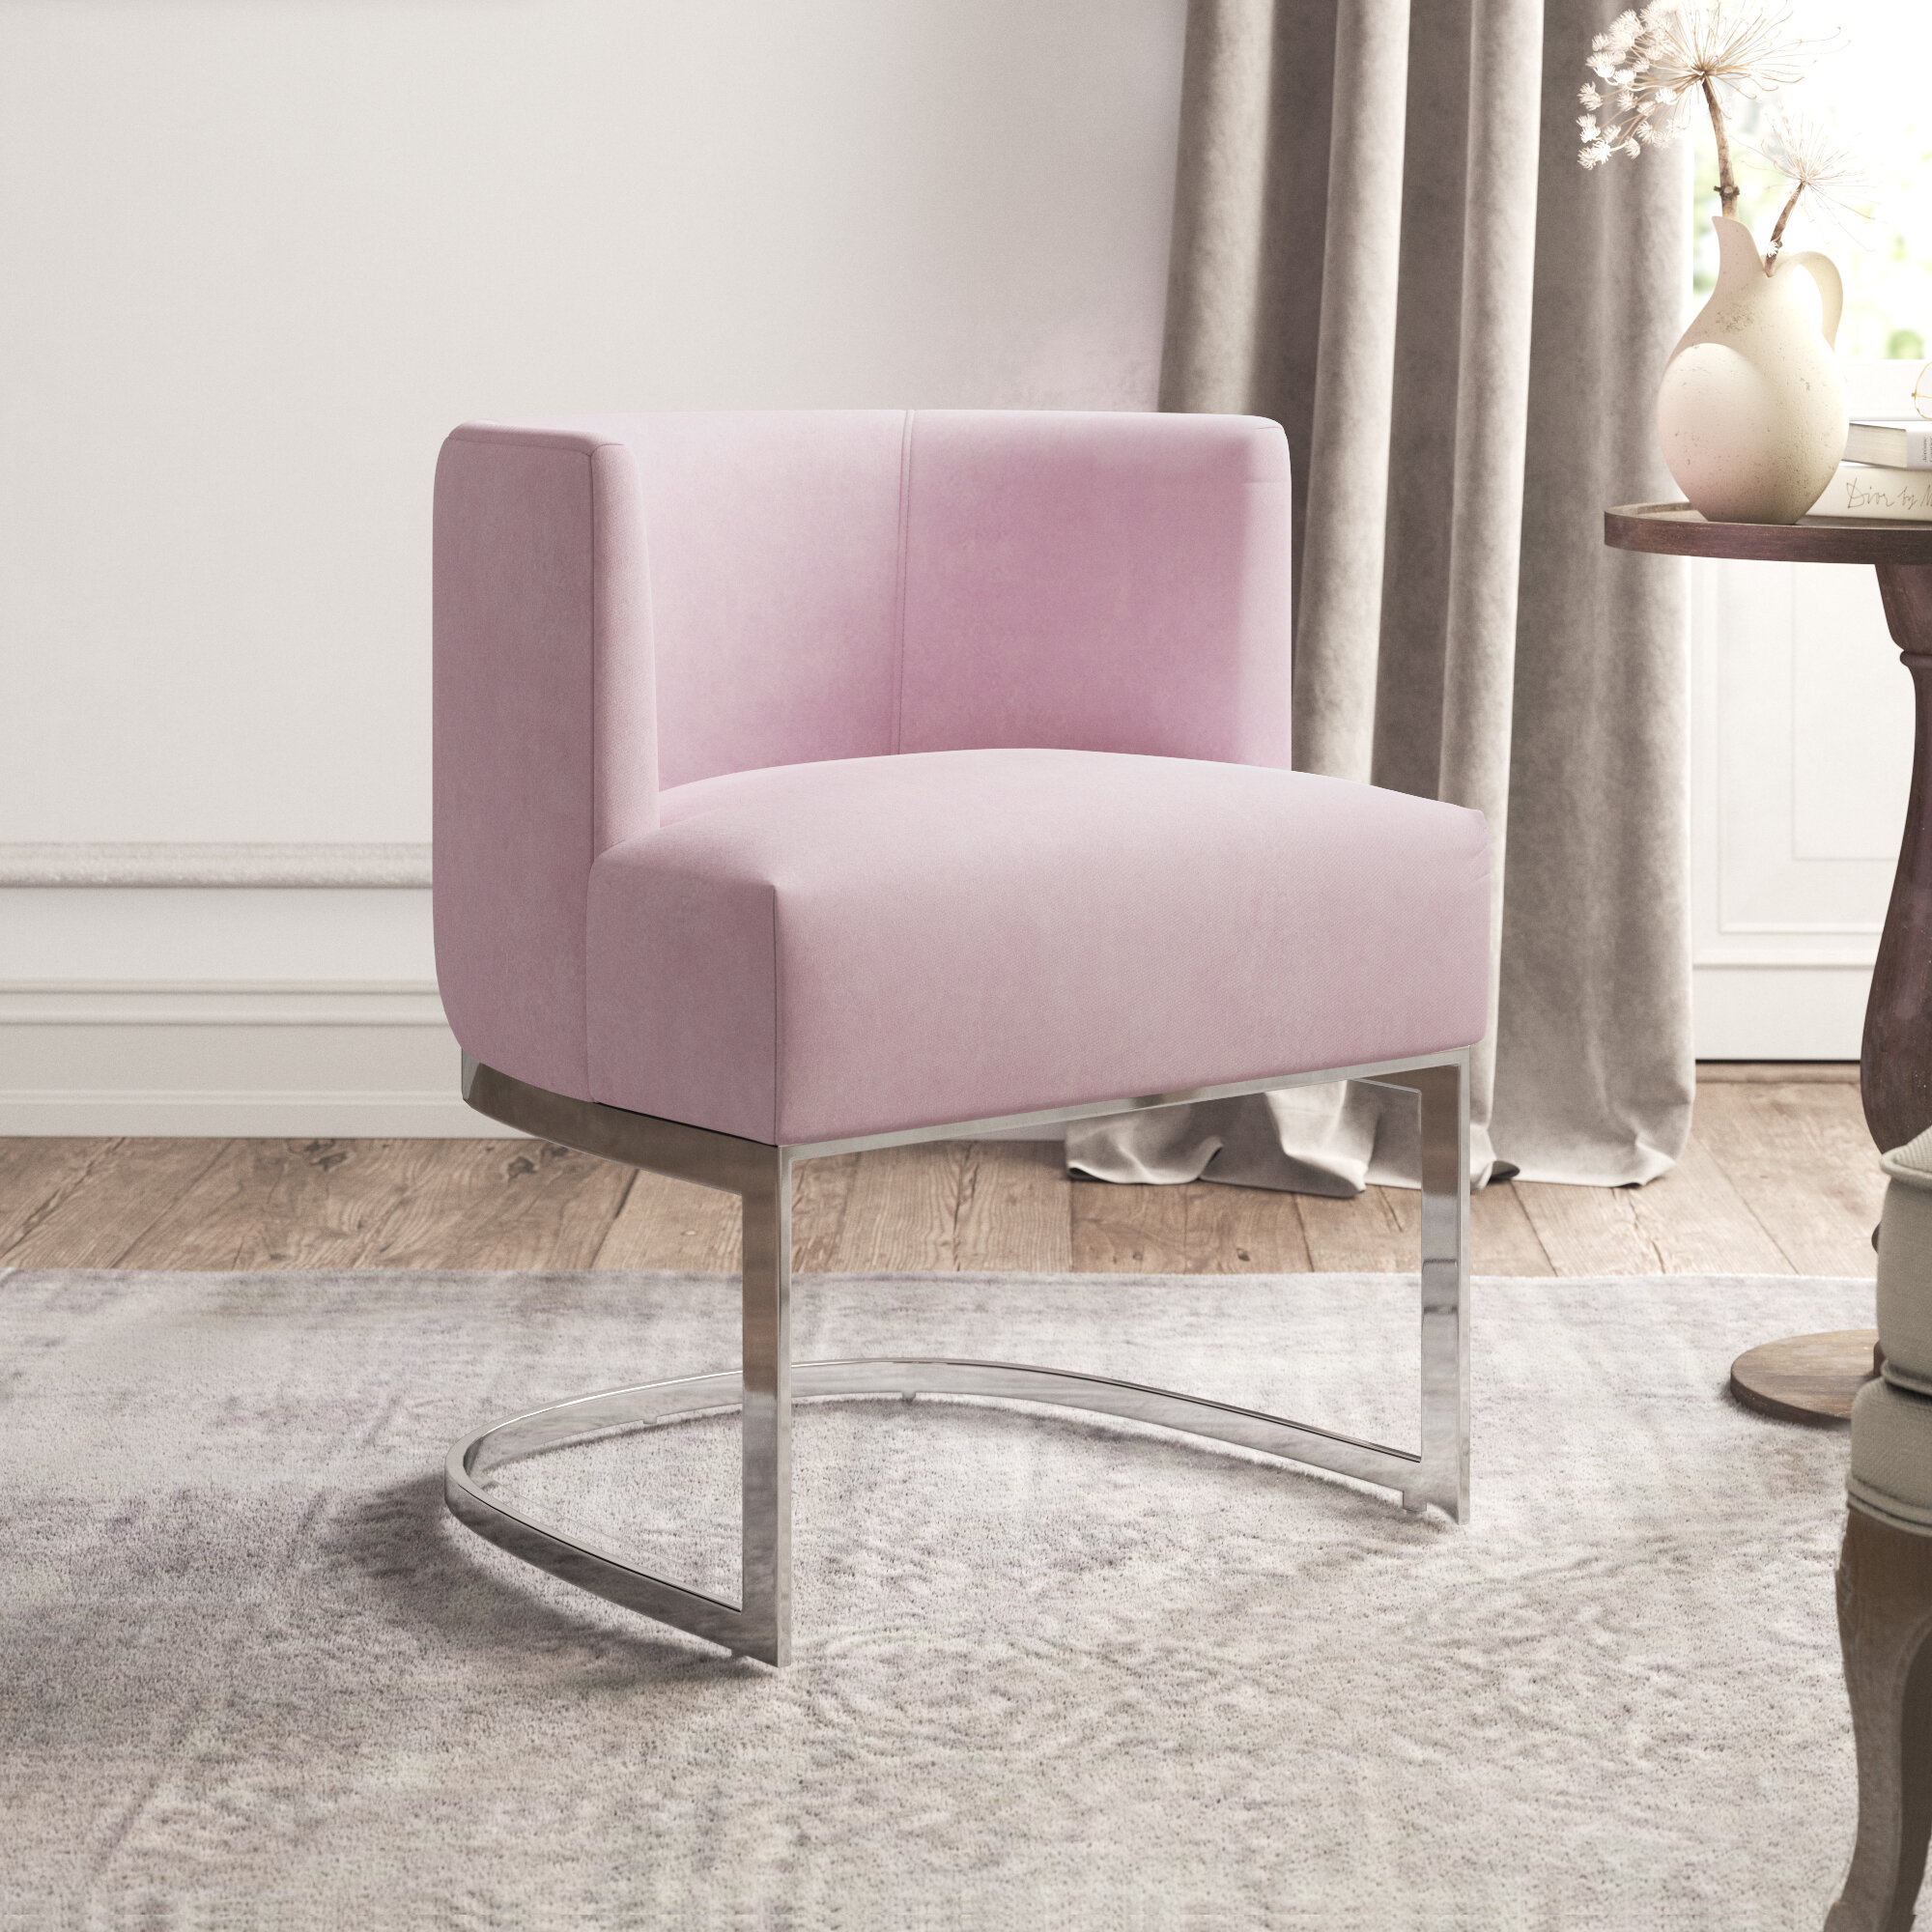 Armless Barrel Accent Chairs You'Ll Love In 2021 | Wayfair Within Riverside Drive Barrel Chair And Ottoman Sets (View 14 of 15)